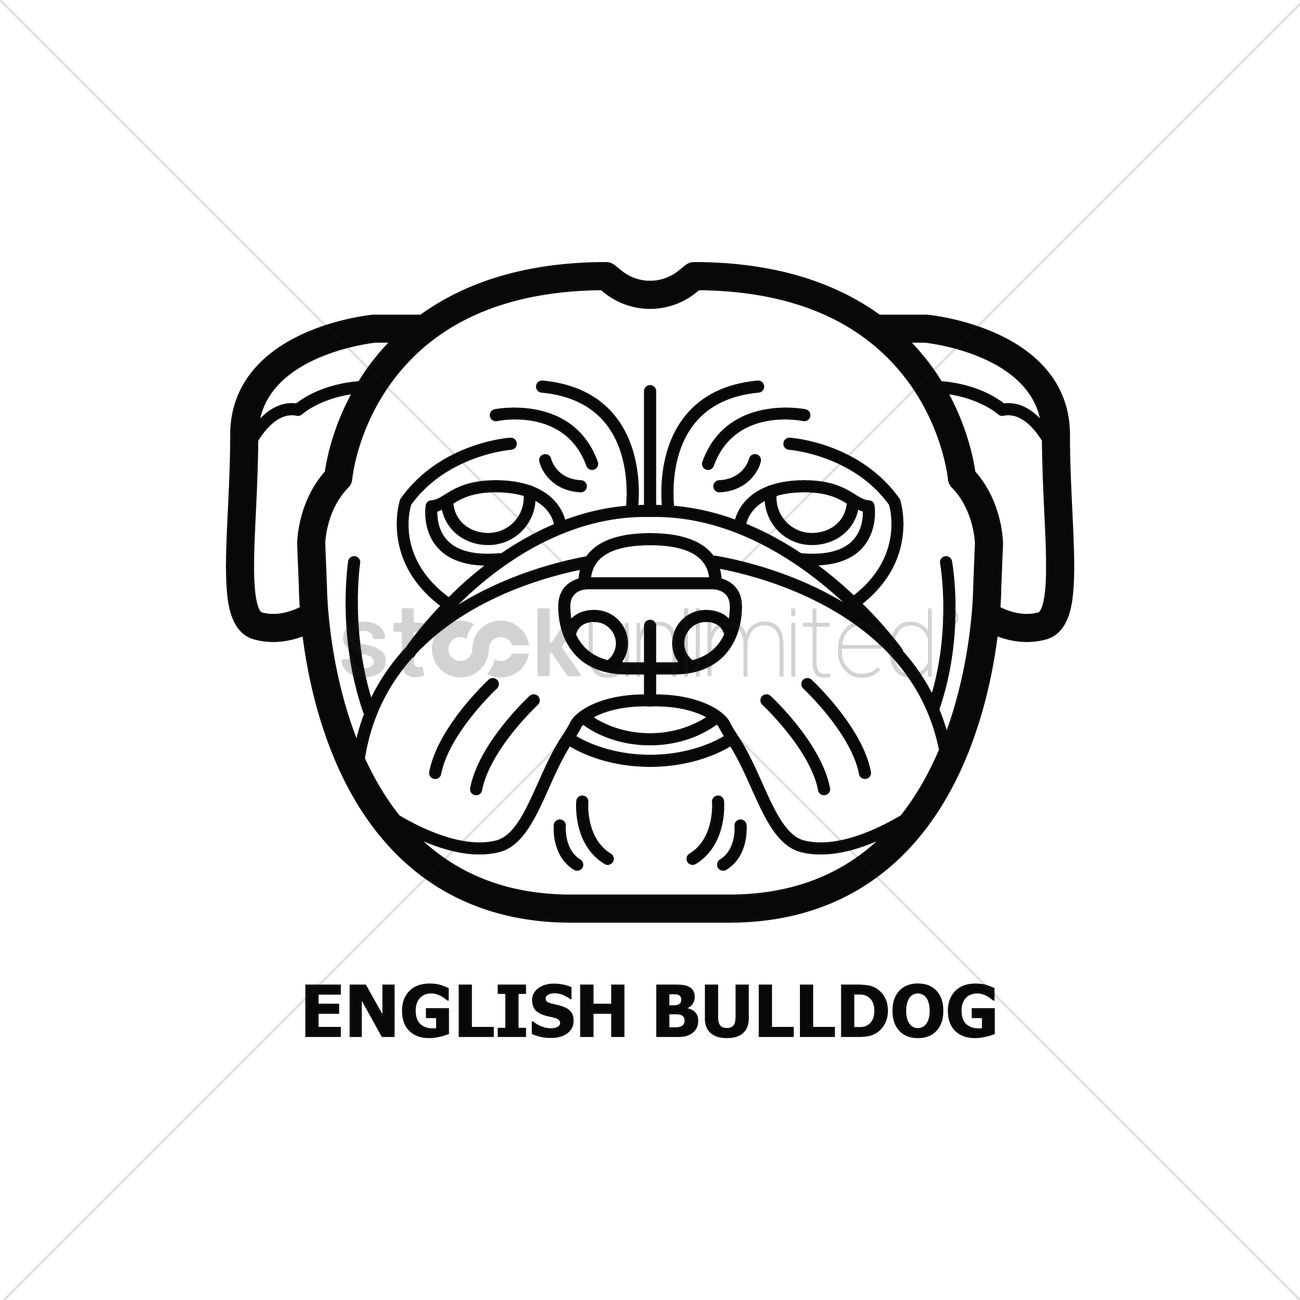 1300x1300 English Bulldog Vector Image